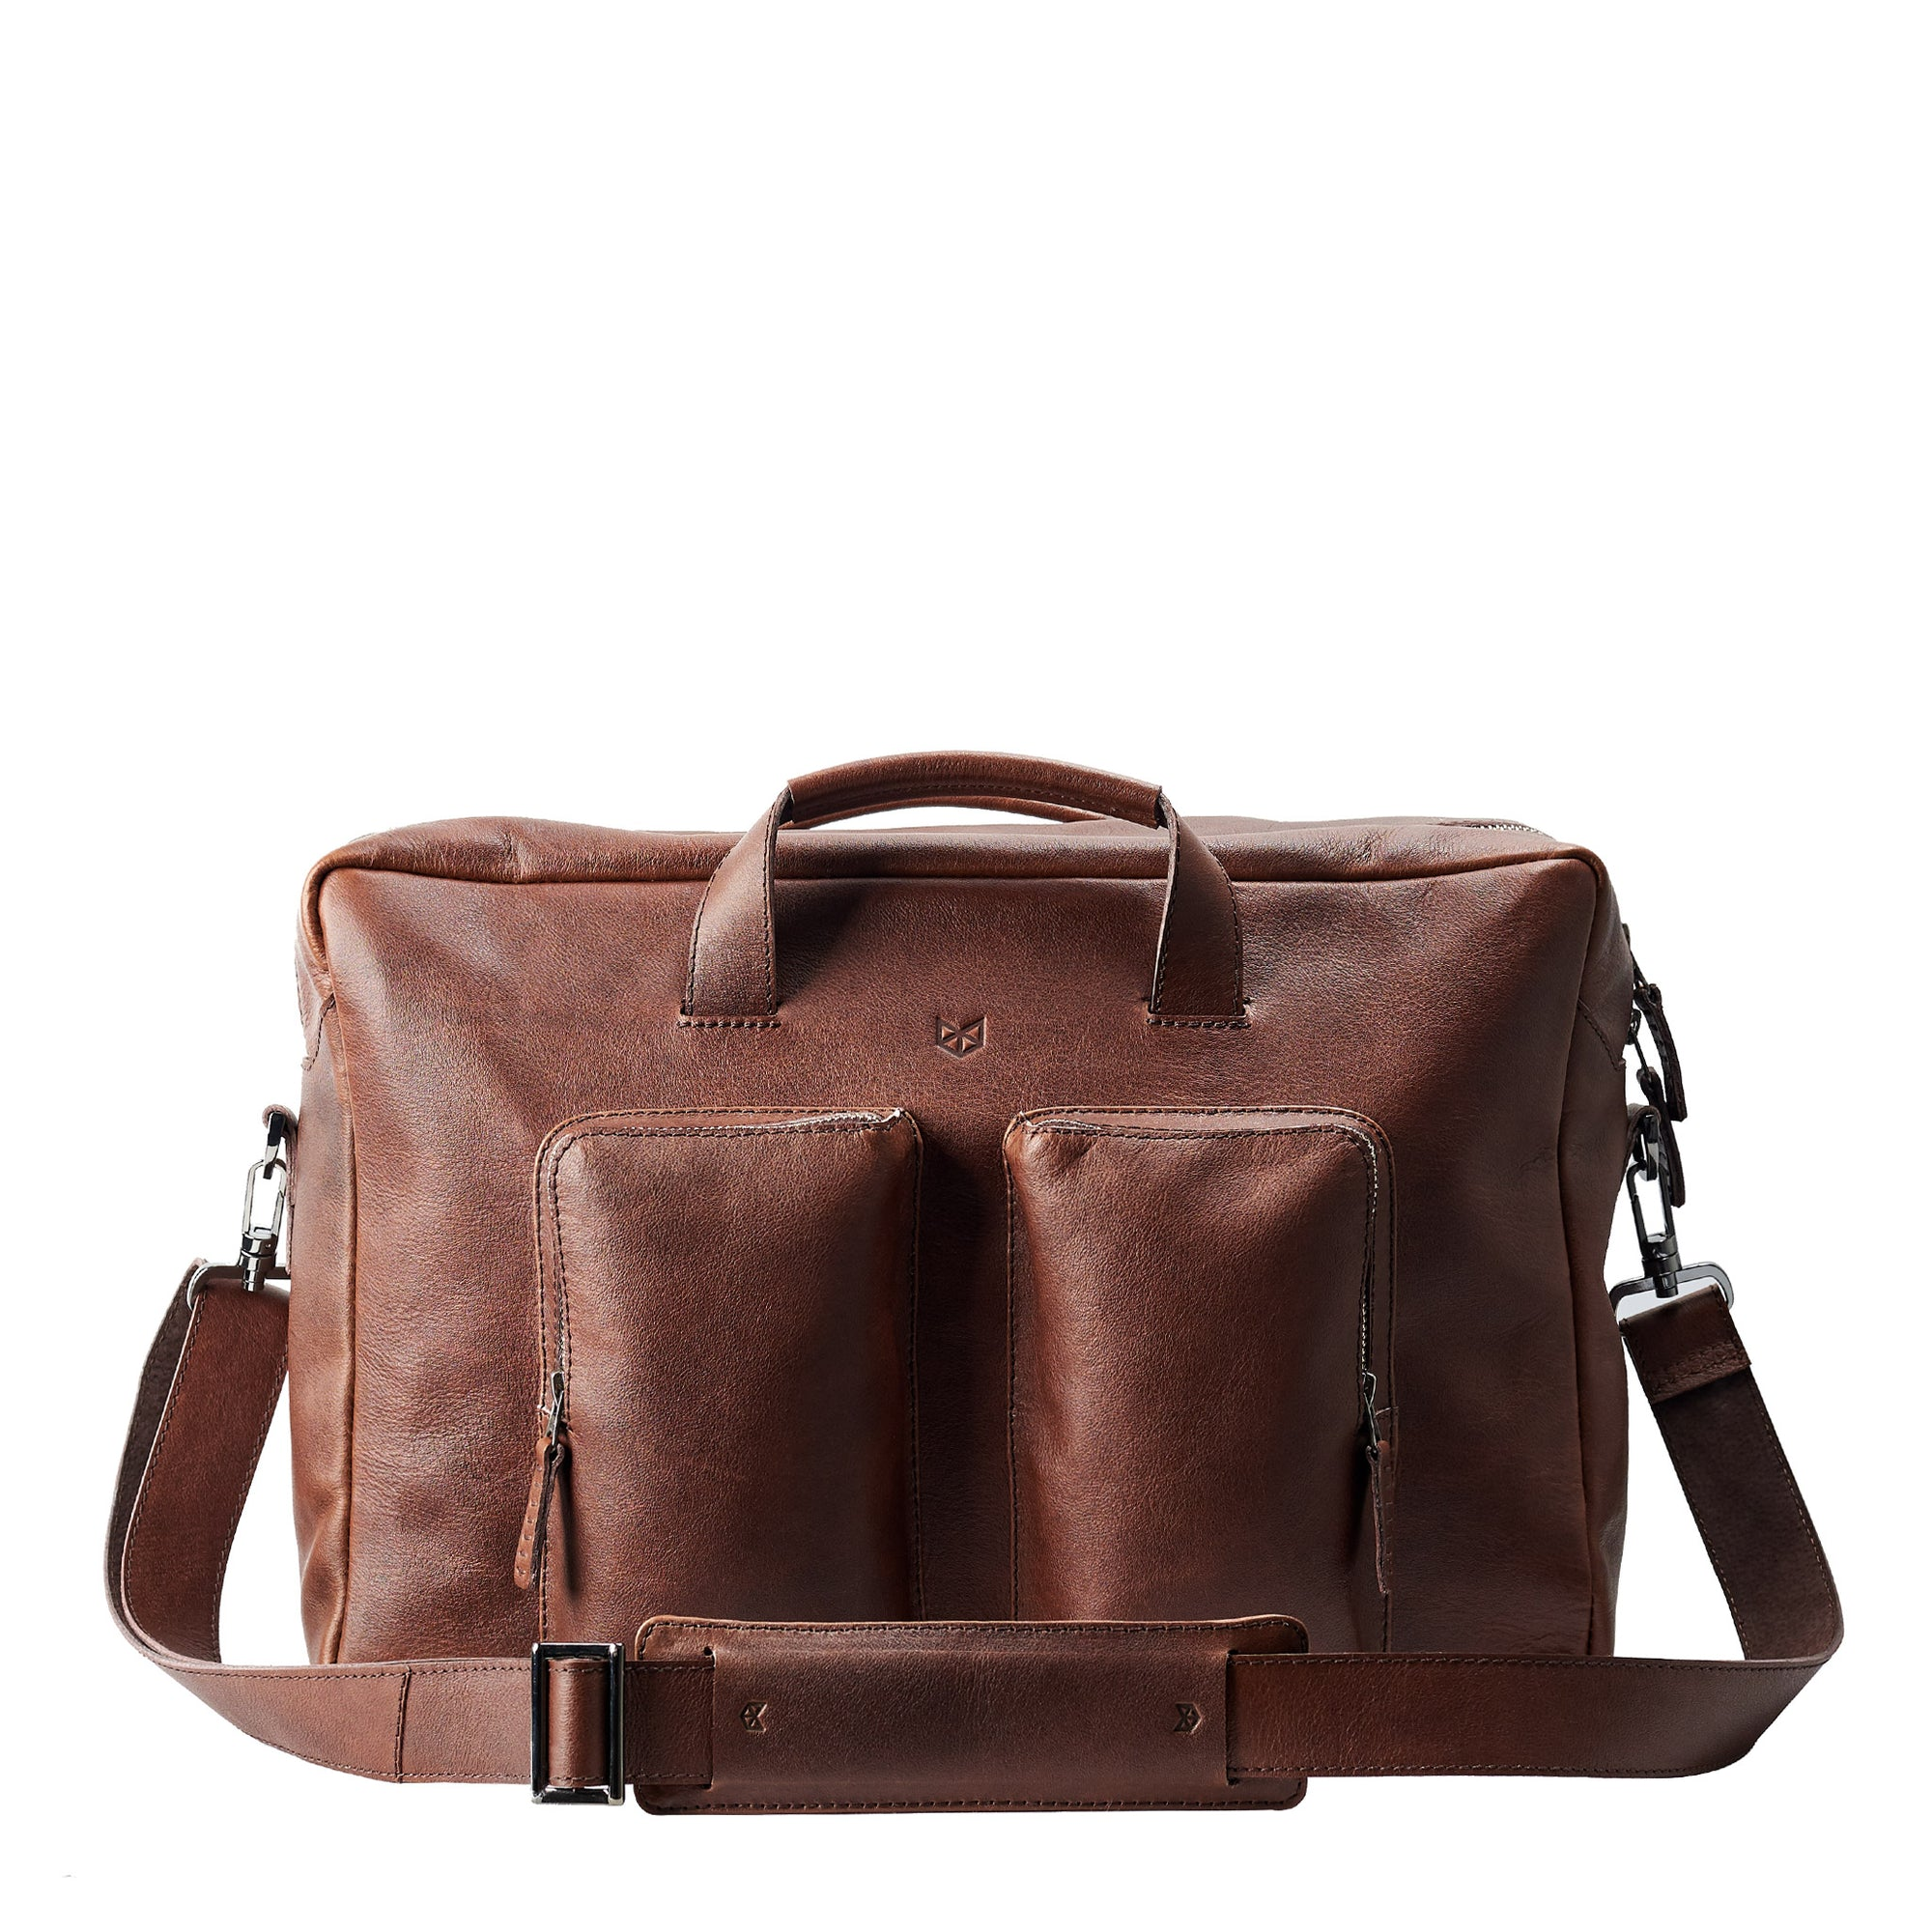 Equz Messenger Bag · Brown